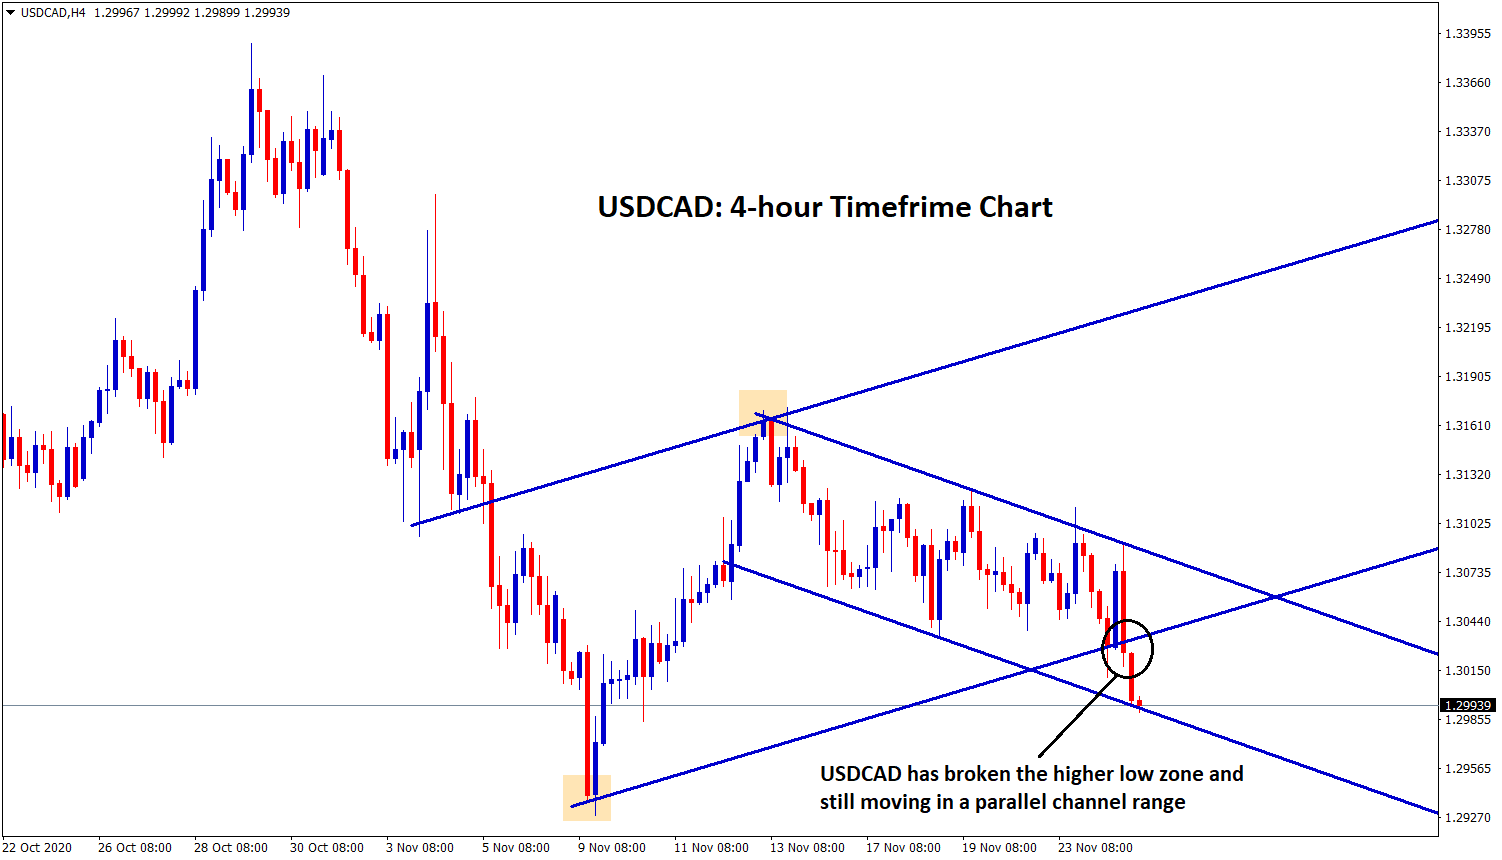 USDCAD broken the higher low and moving in parallel channel range